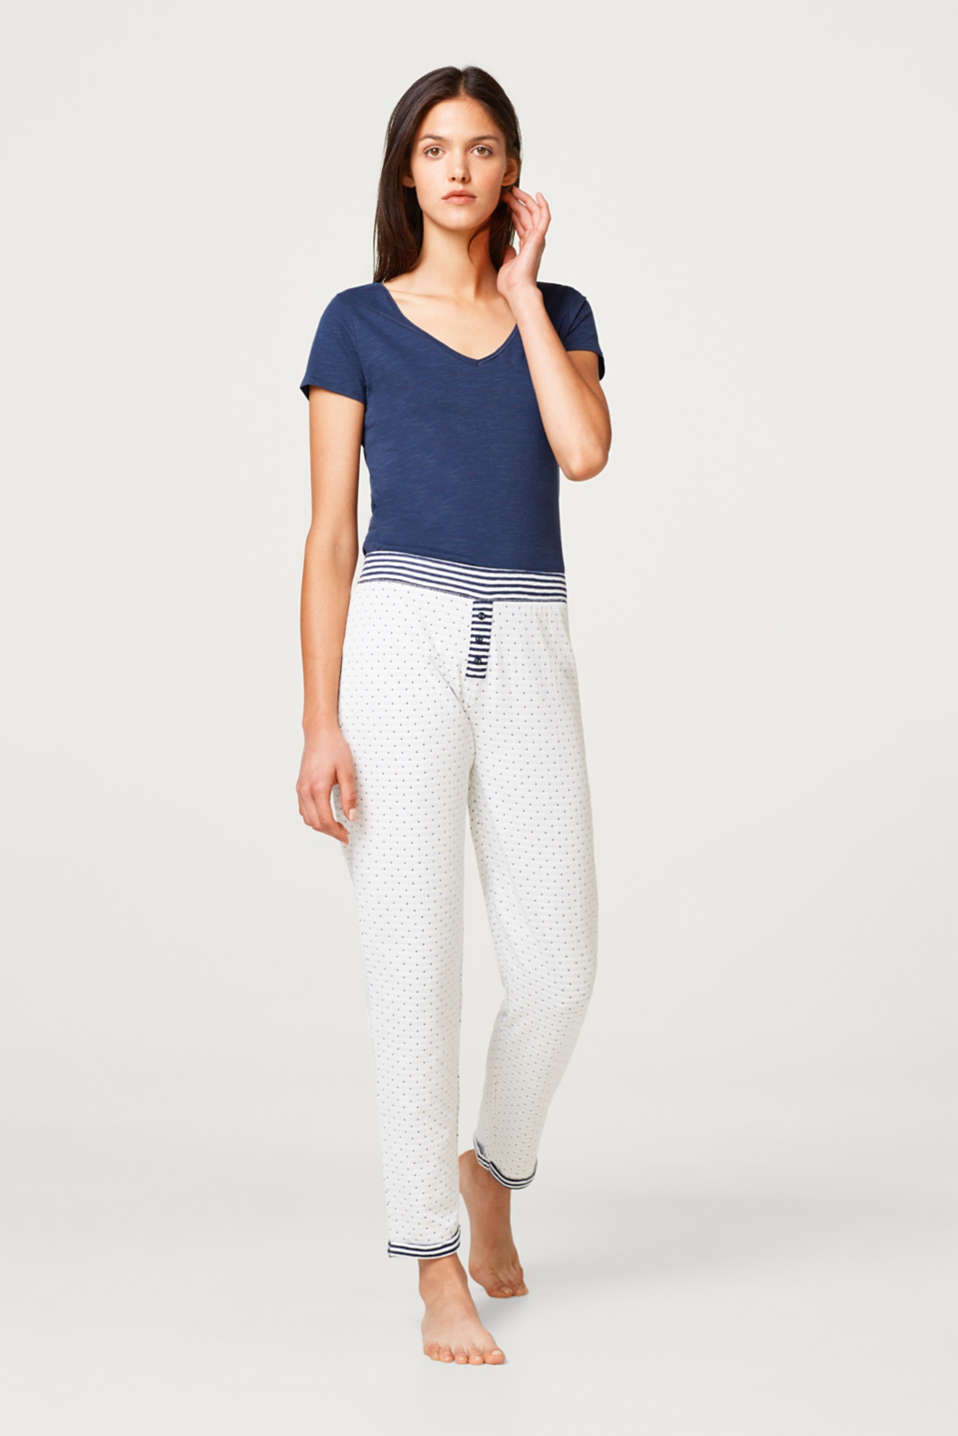 Esprit - Casual bottoms in double-faced jersey